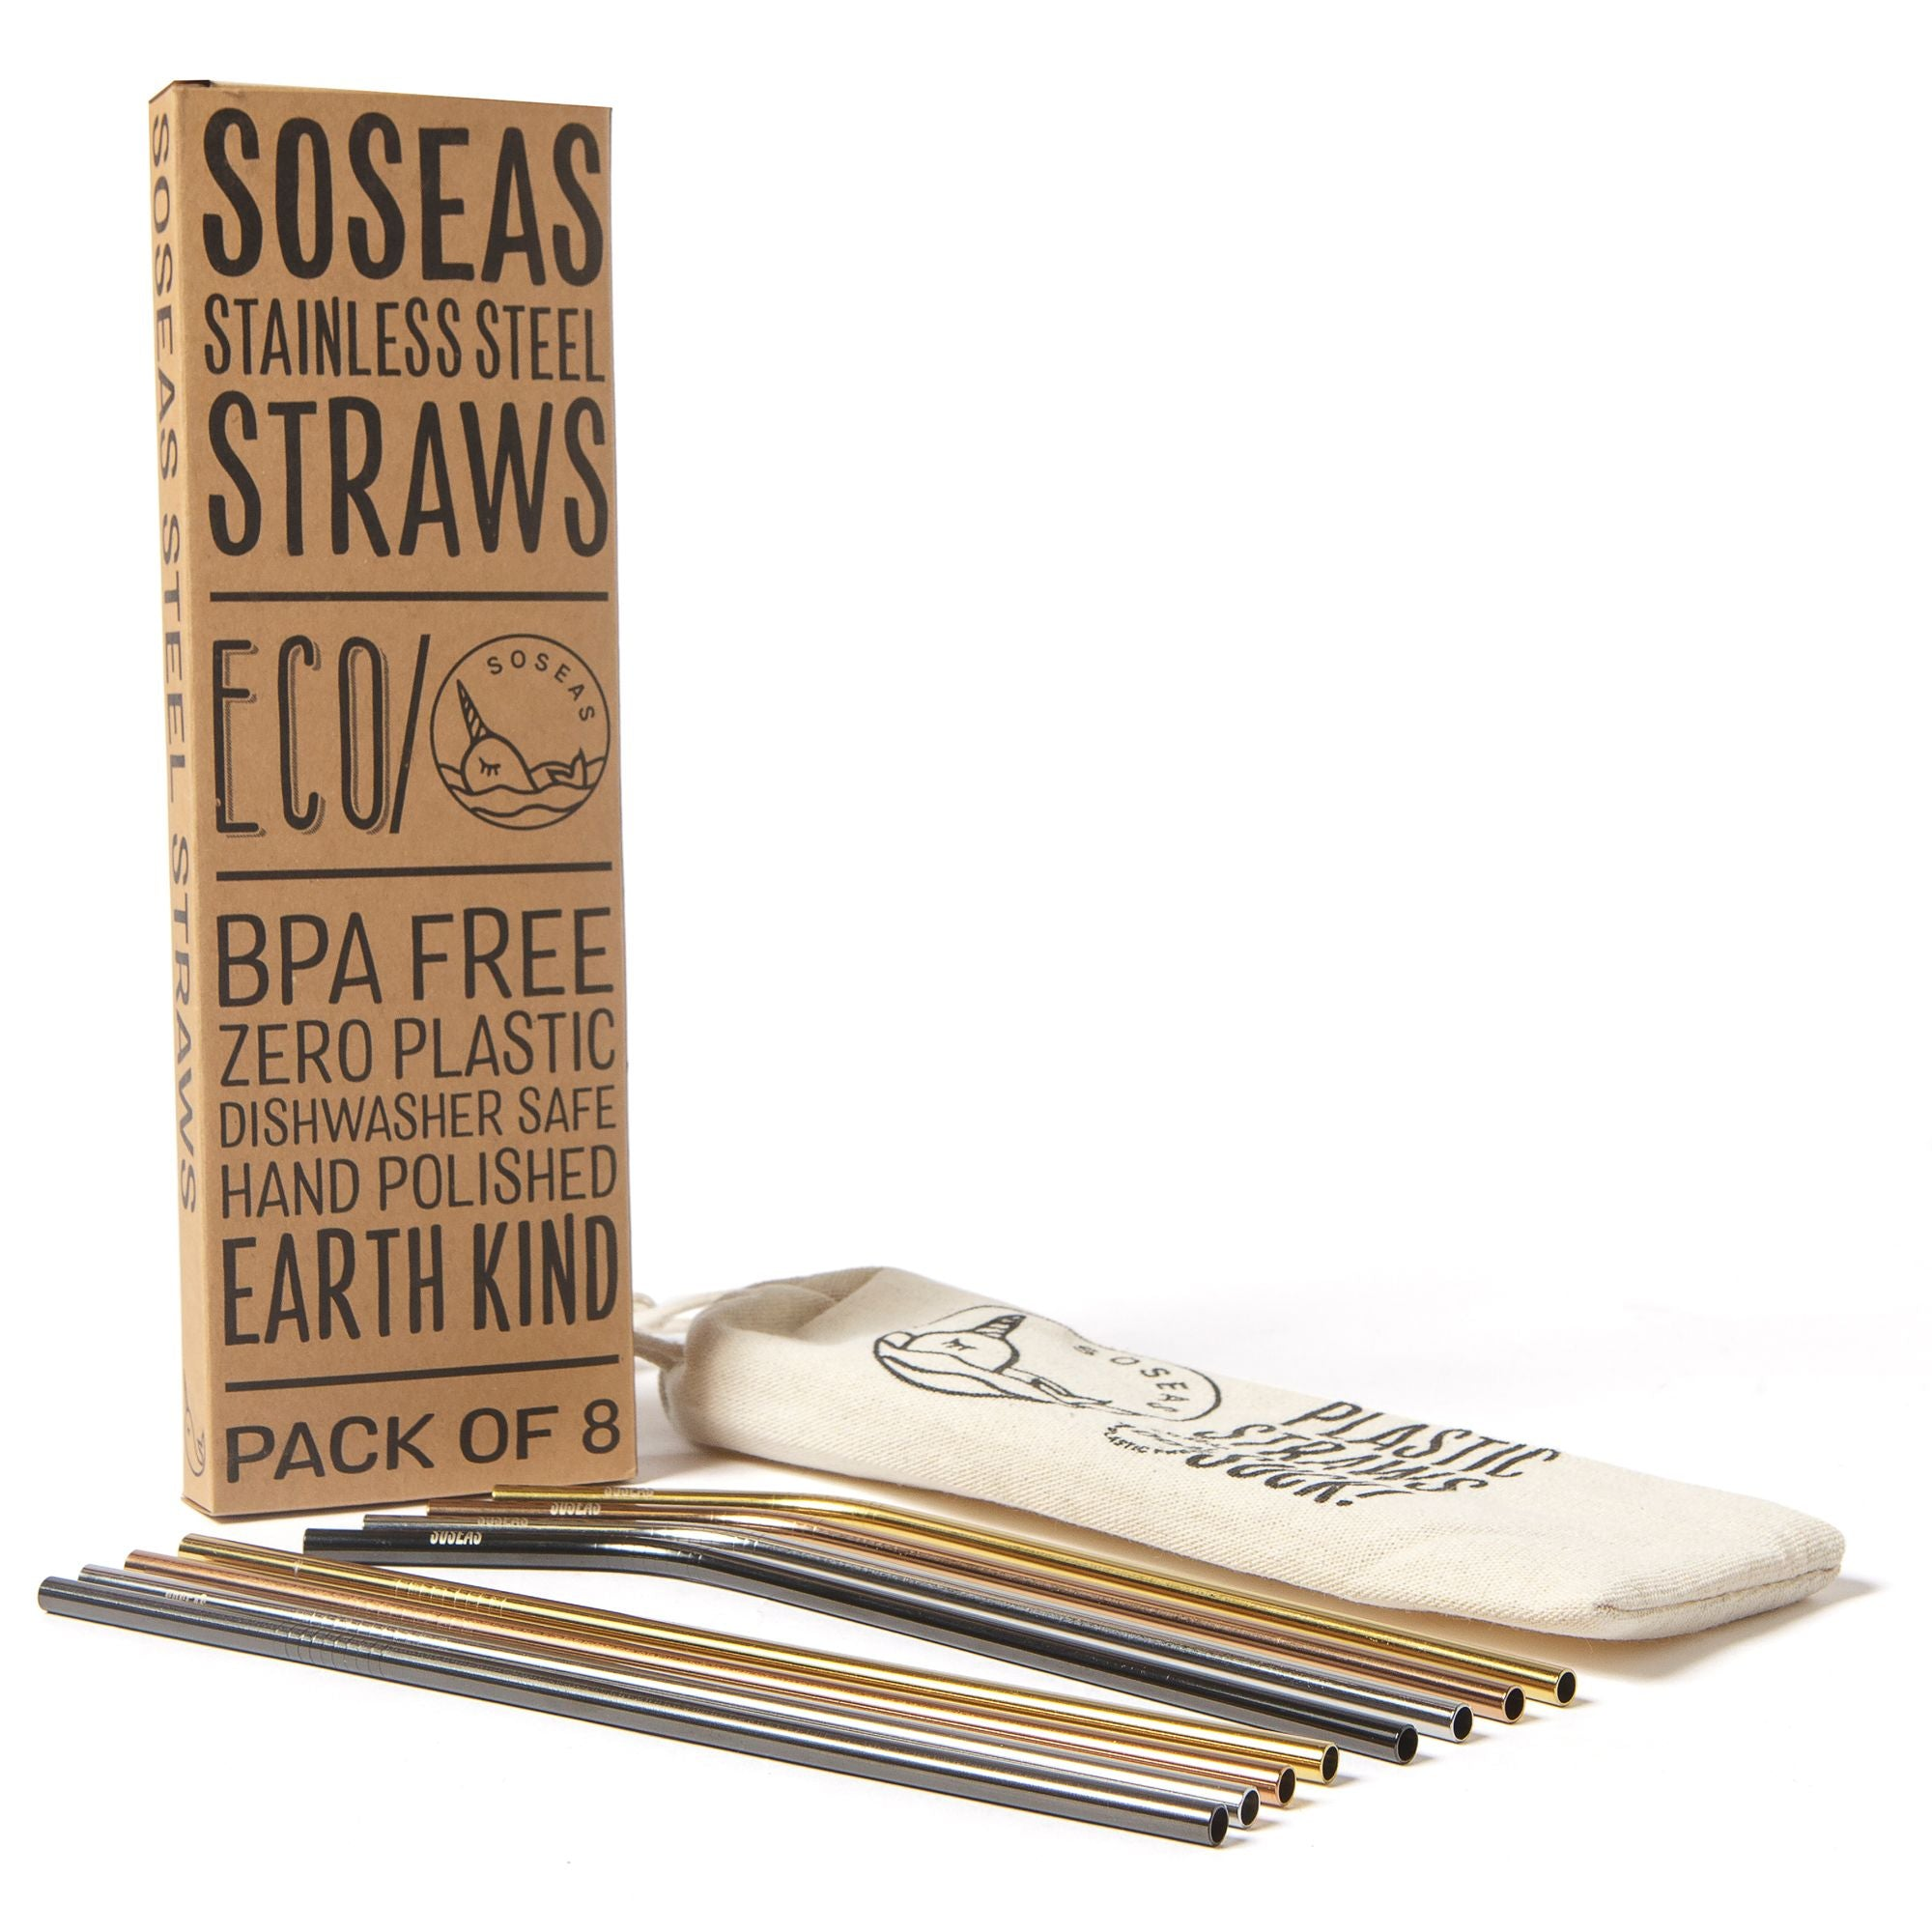 Reusable Stainless Steel Straws 8 Pack Alt pic